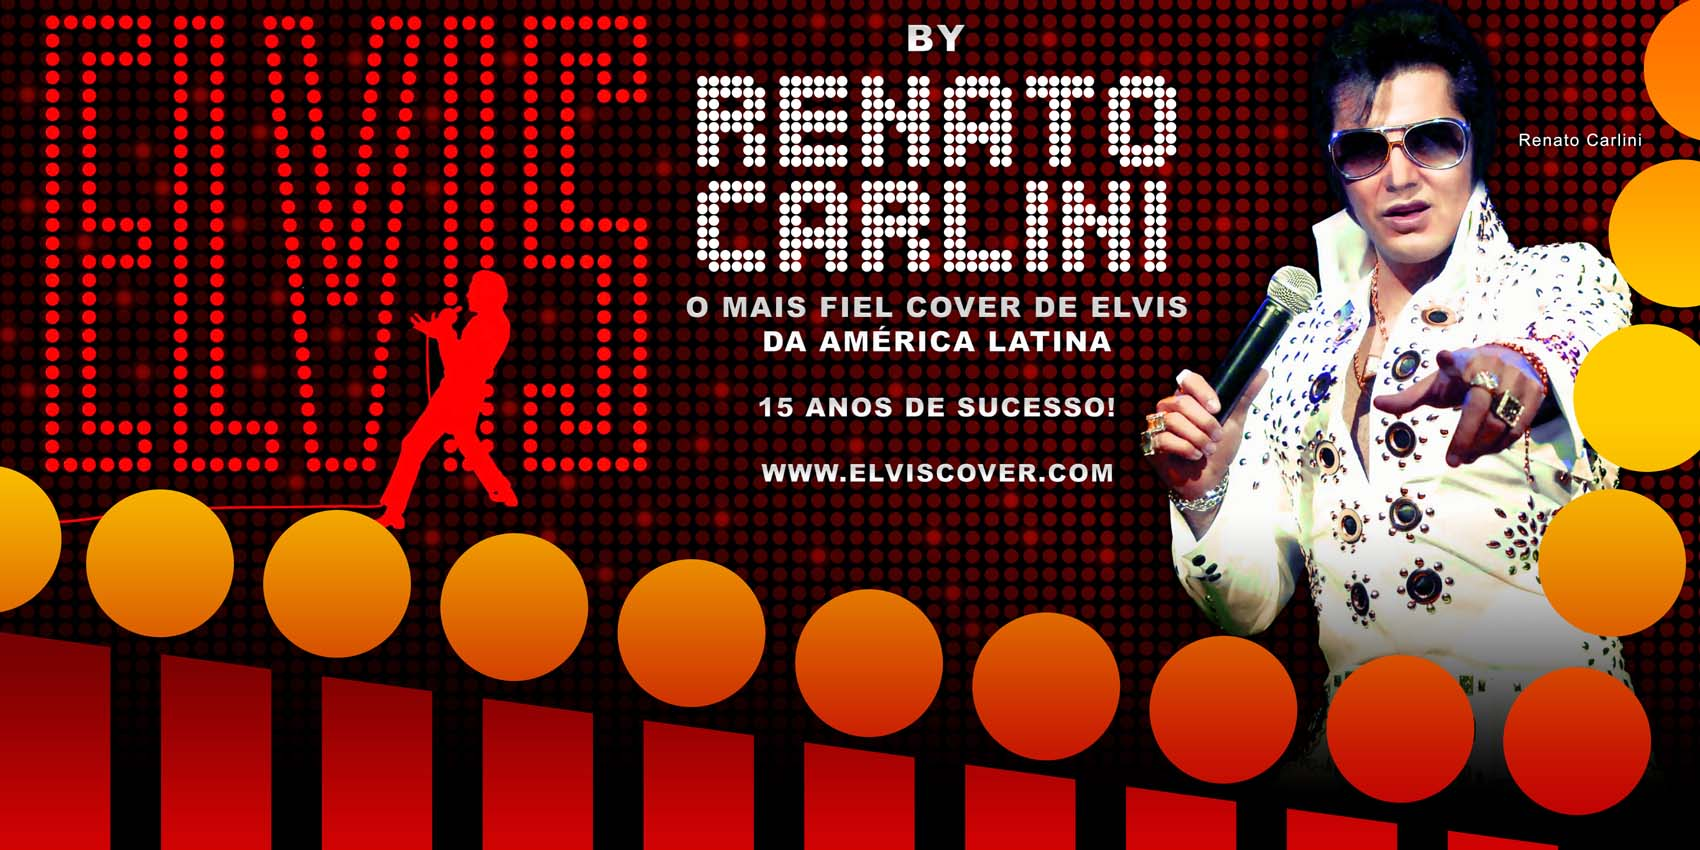 ELVIS COVER RENATO CARLINI